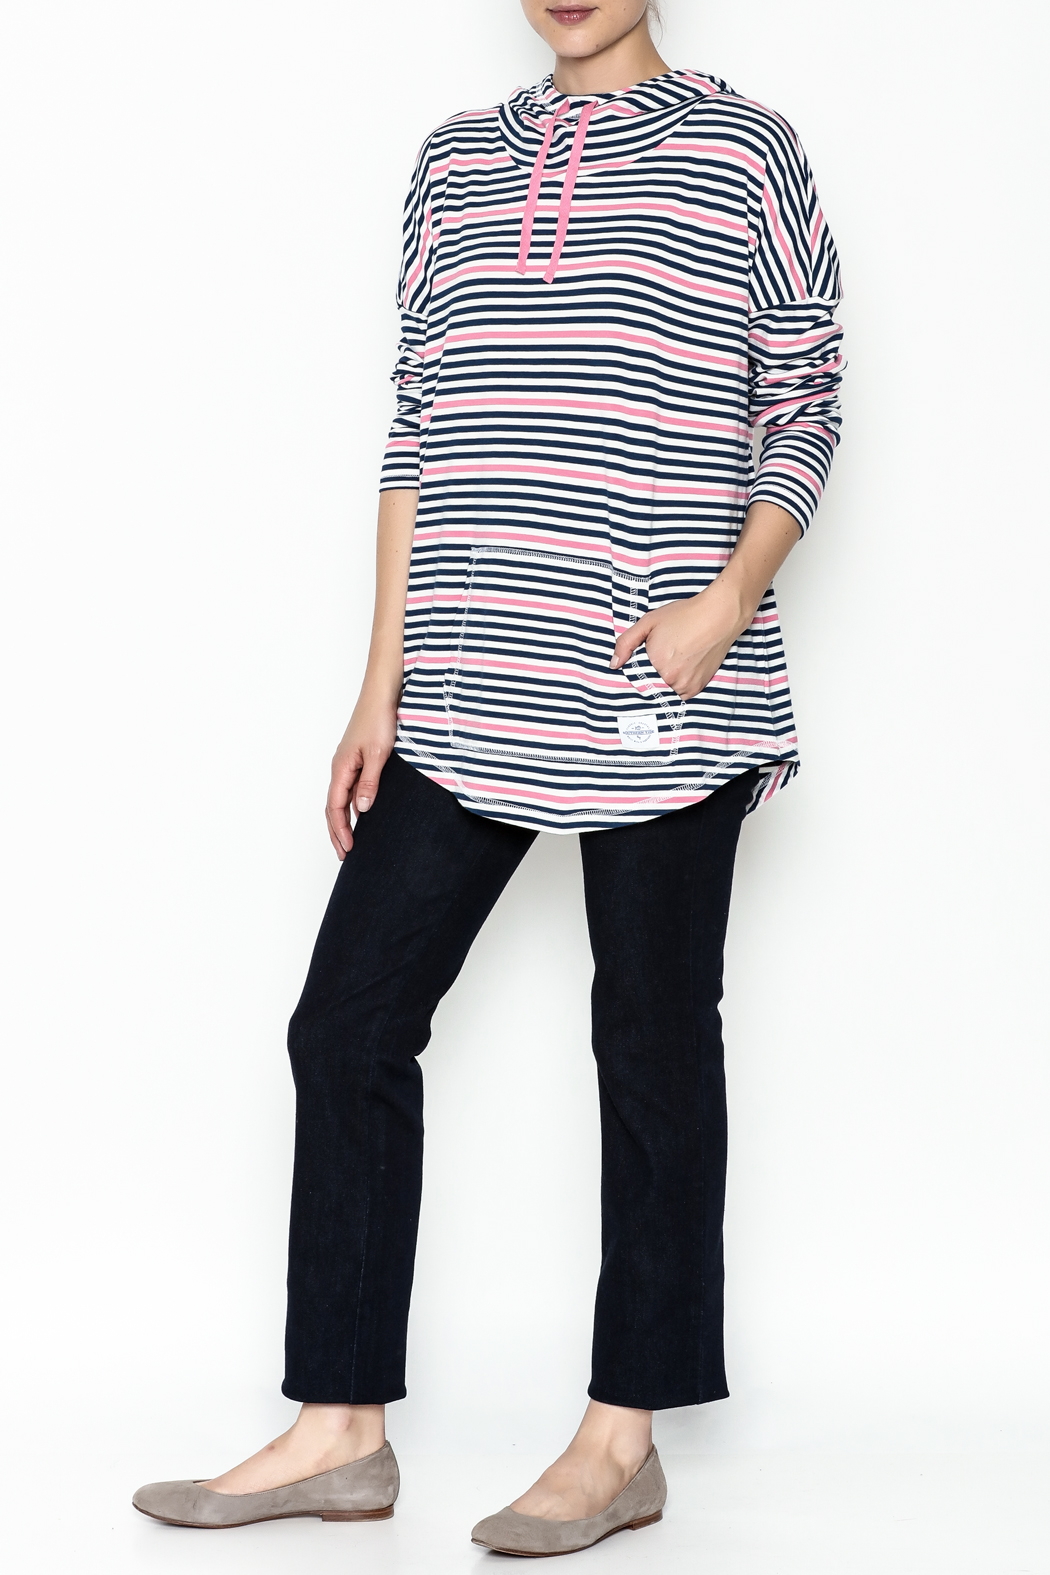 Southern Tide Stripe Skipper Hoodie - Side Cropped Image